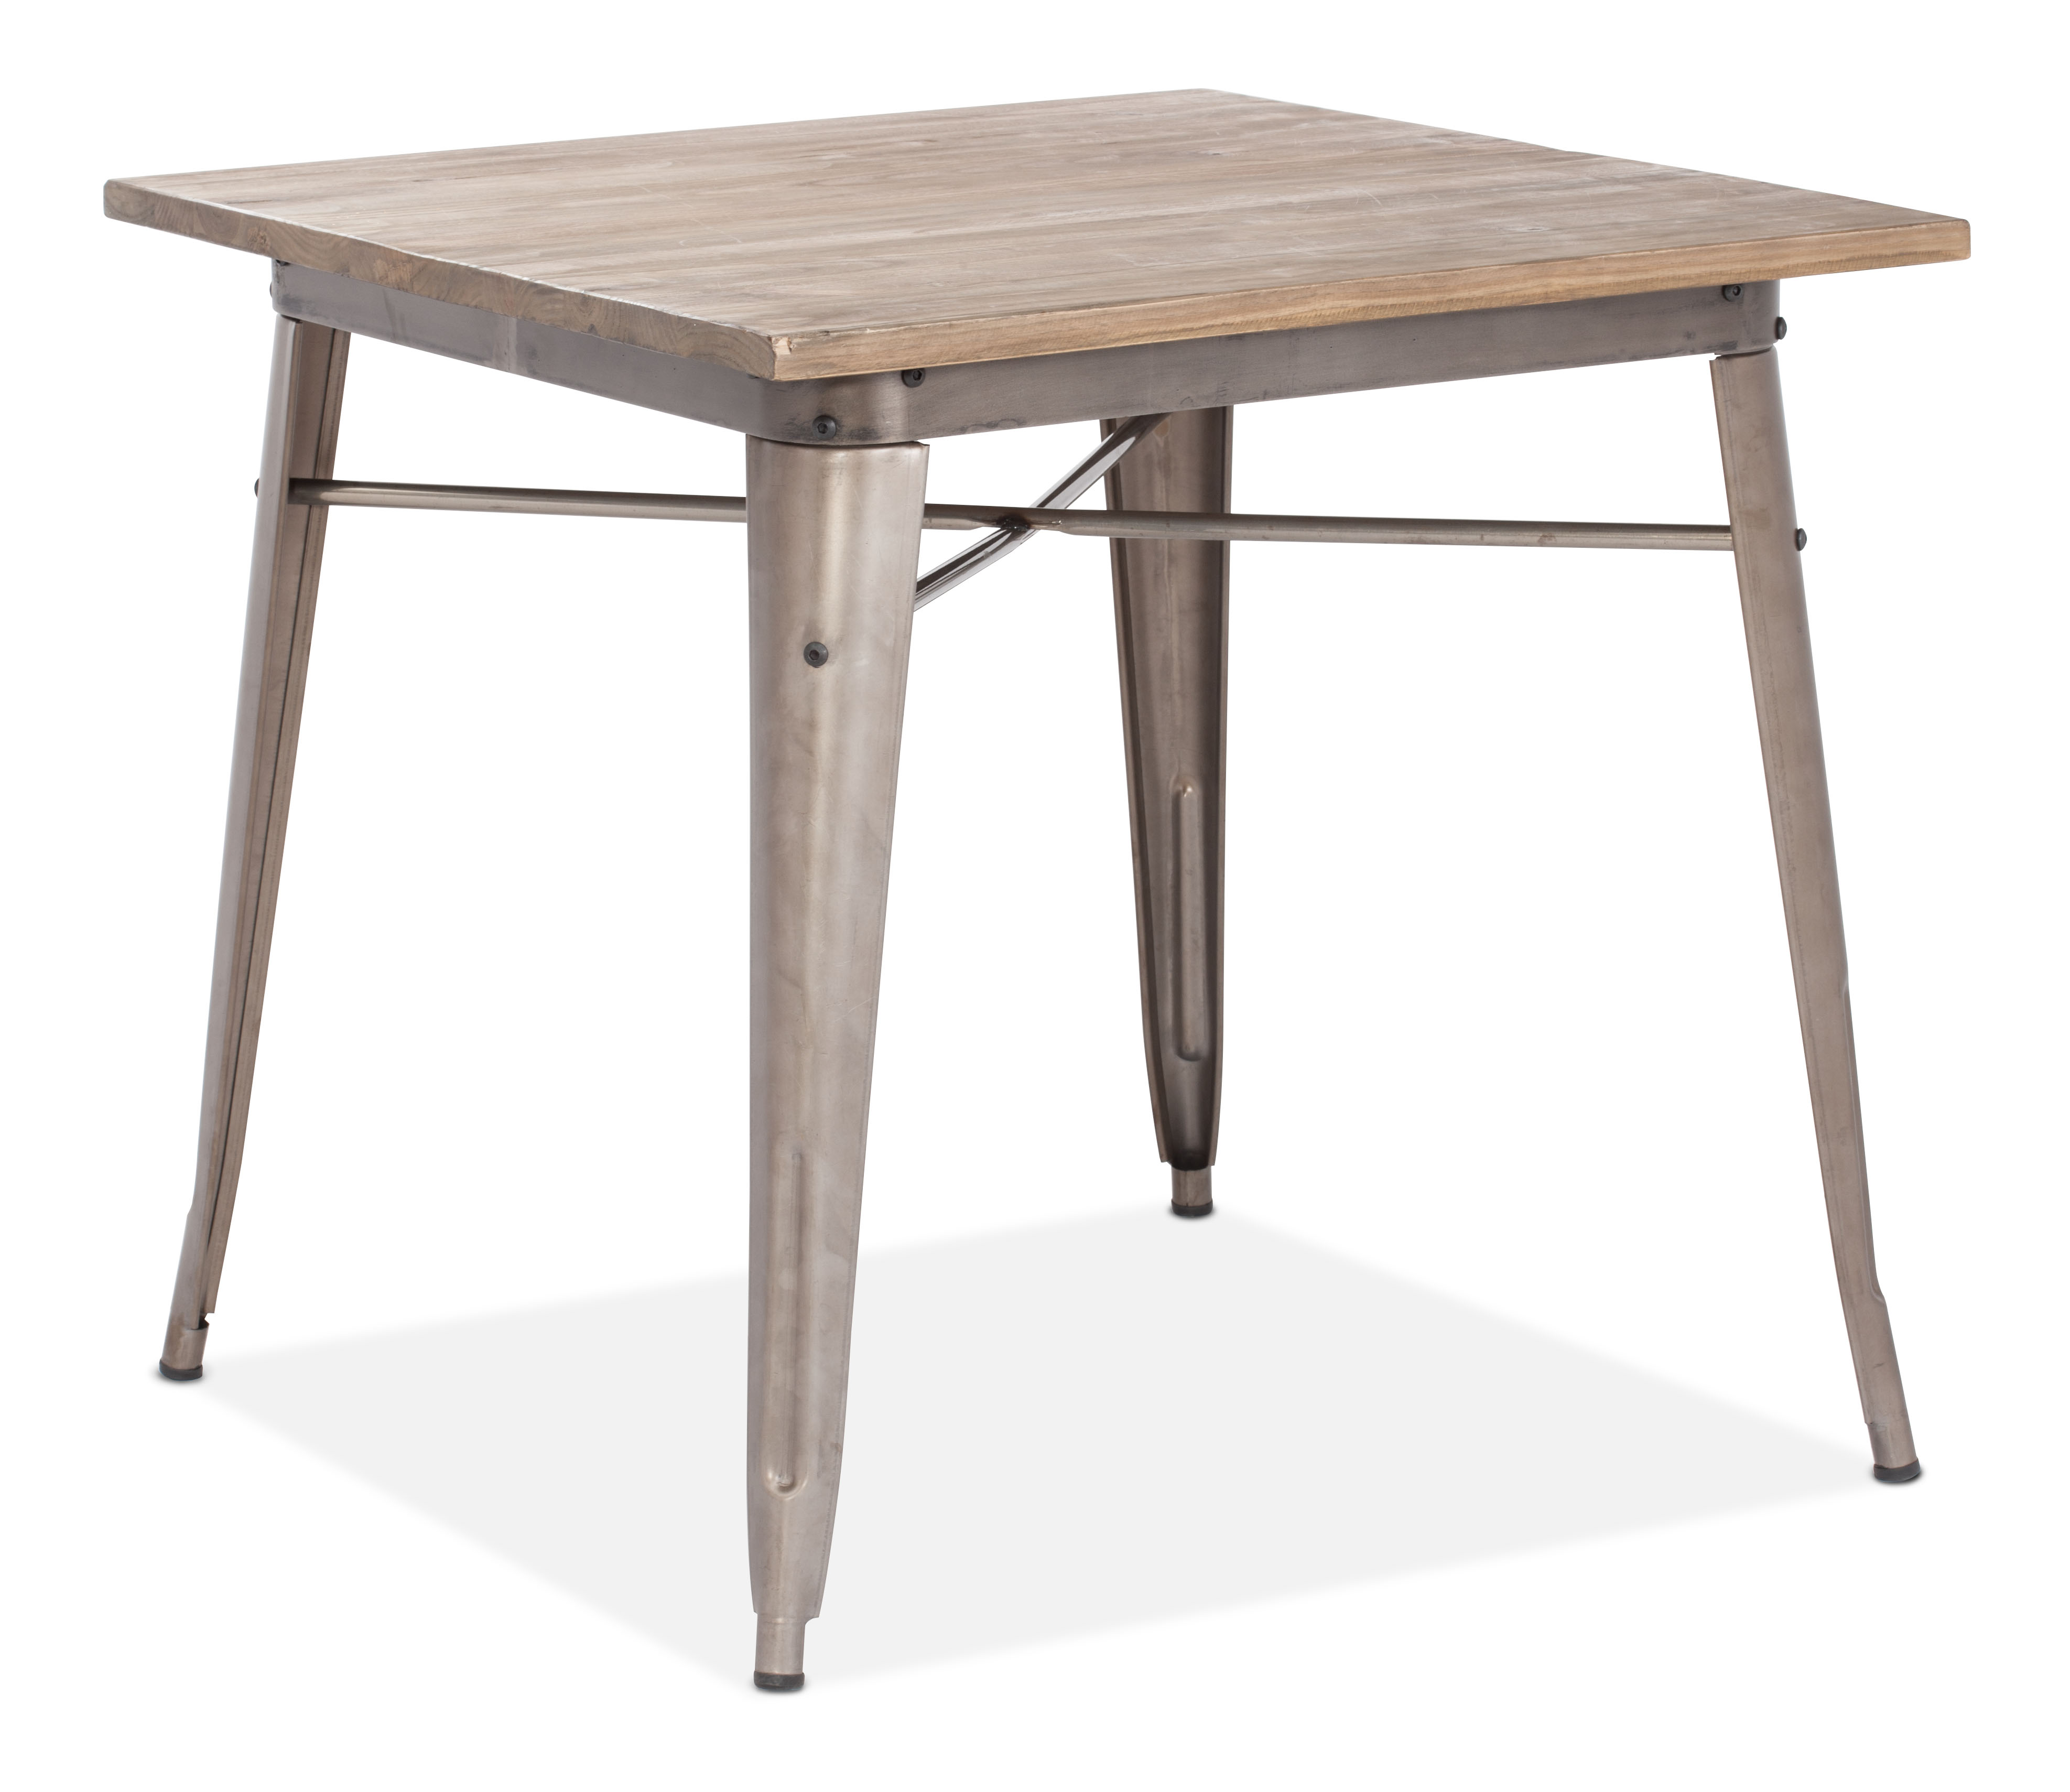 20.   Chloe Dining Table